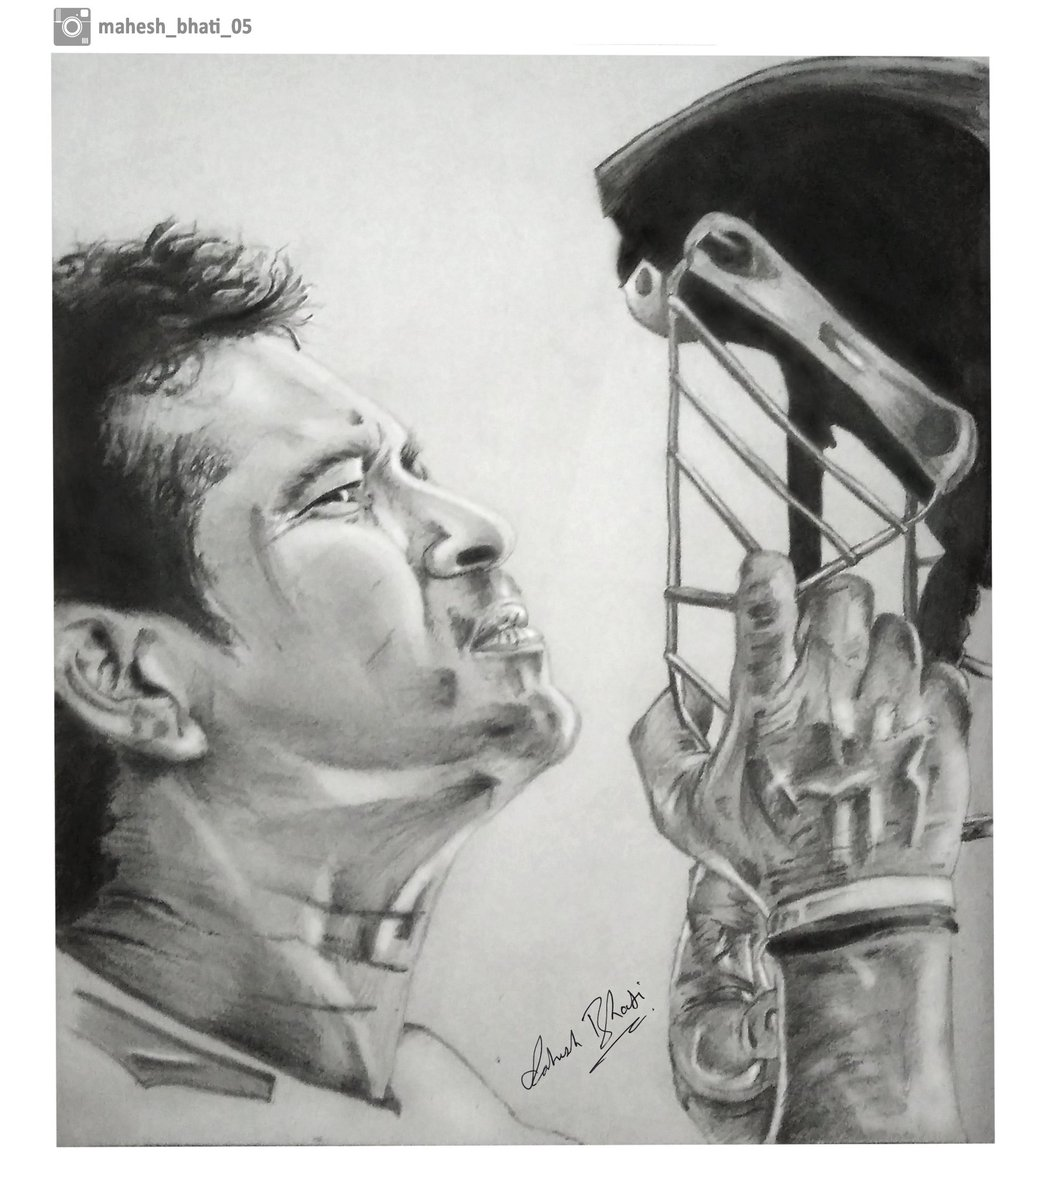 Mahesh bhati on twitter pencil sketching of god of cricket